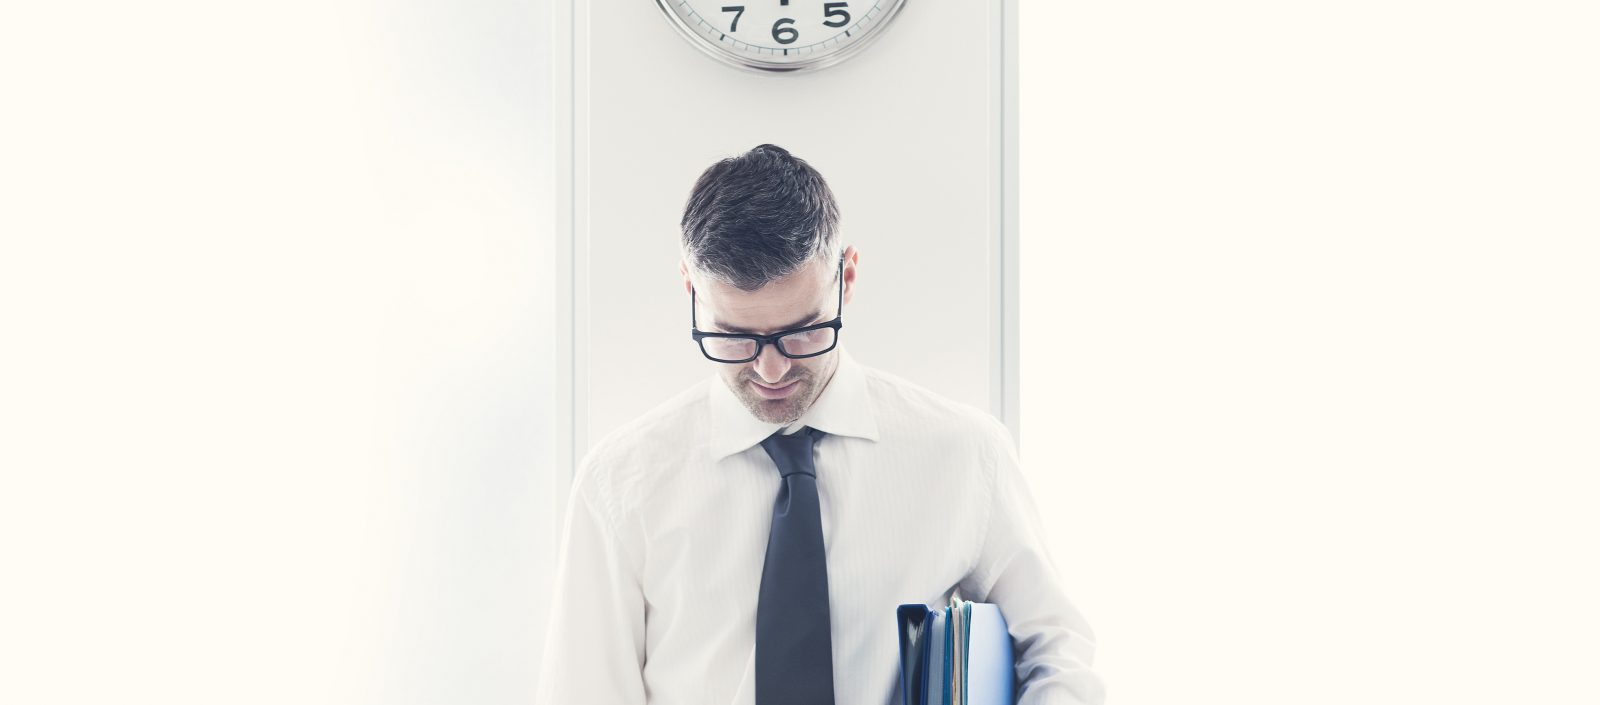 Consider how your employees may feel when the FLSA overtime rules change.